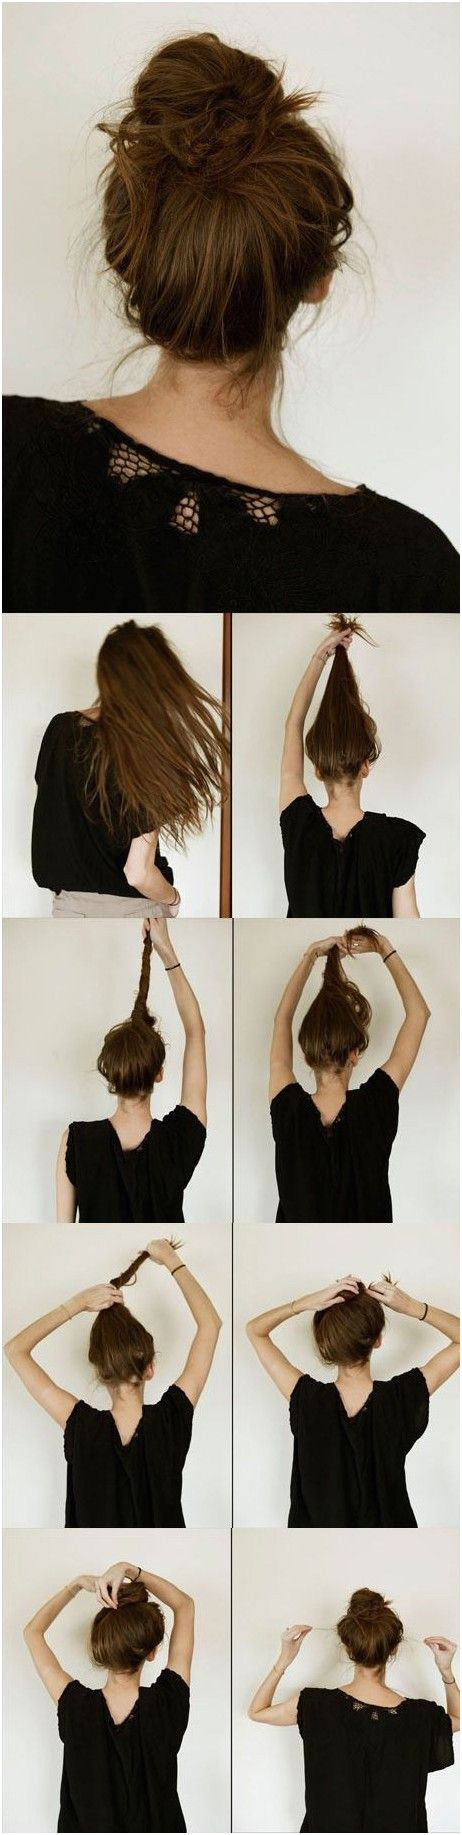 Everyday Cute Hairstyles for Work 10 Ways to Make Cute Everyday Hairstyles Long Hair Tutorials